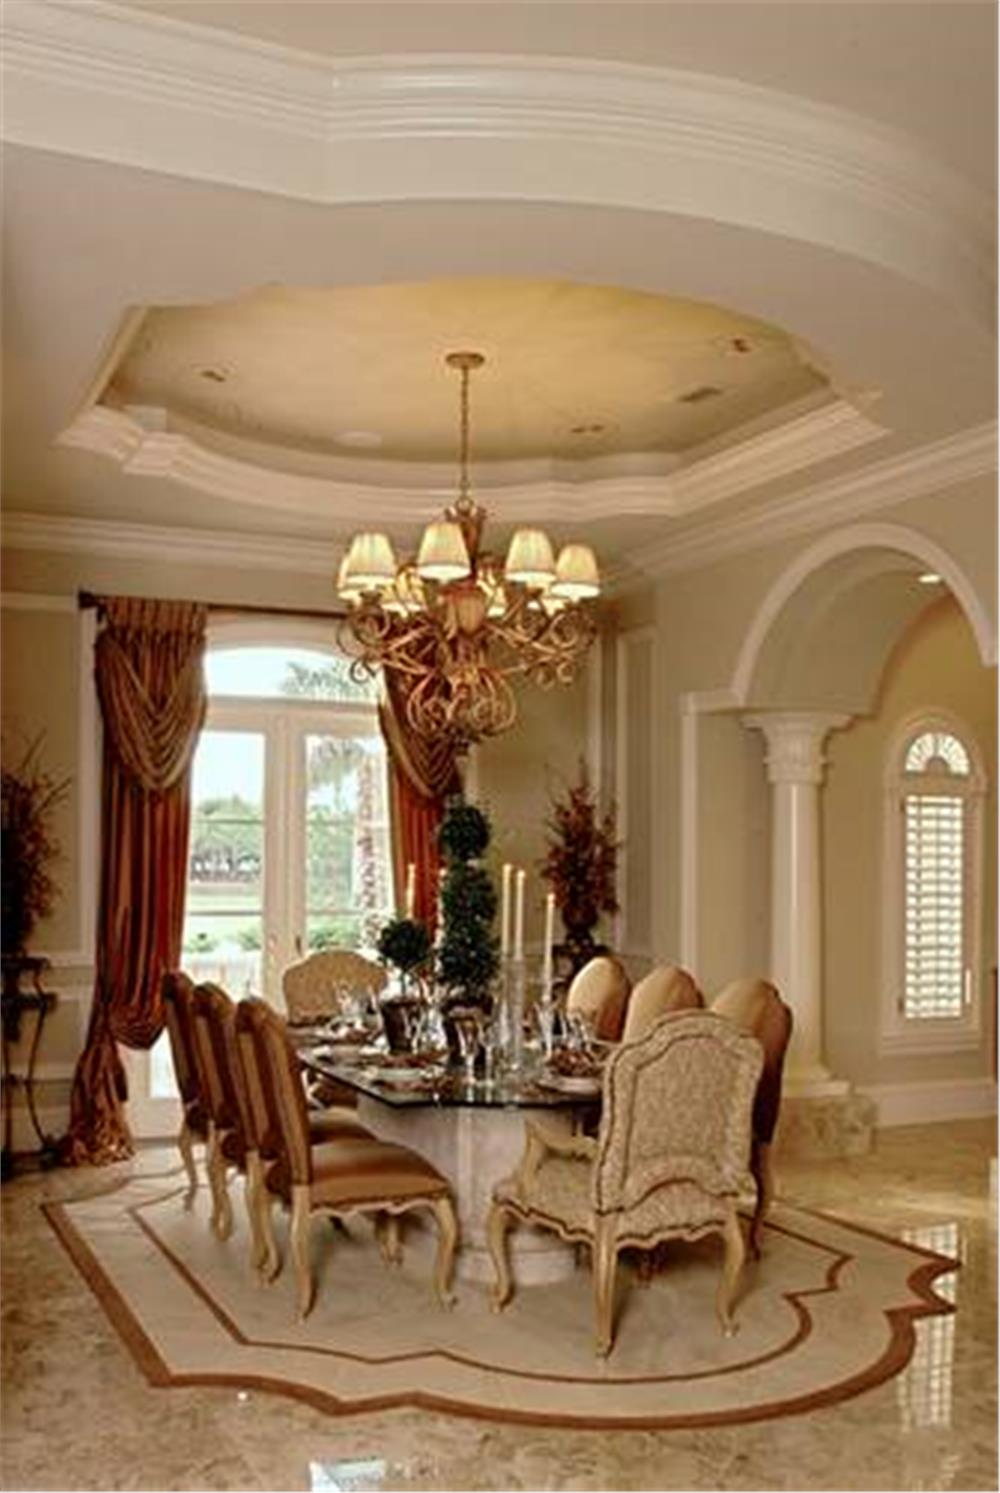 175-1073: Home Interior Photograph-Dining Room